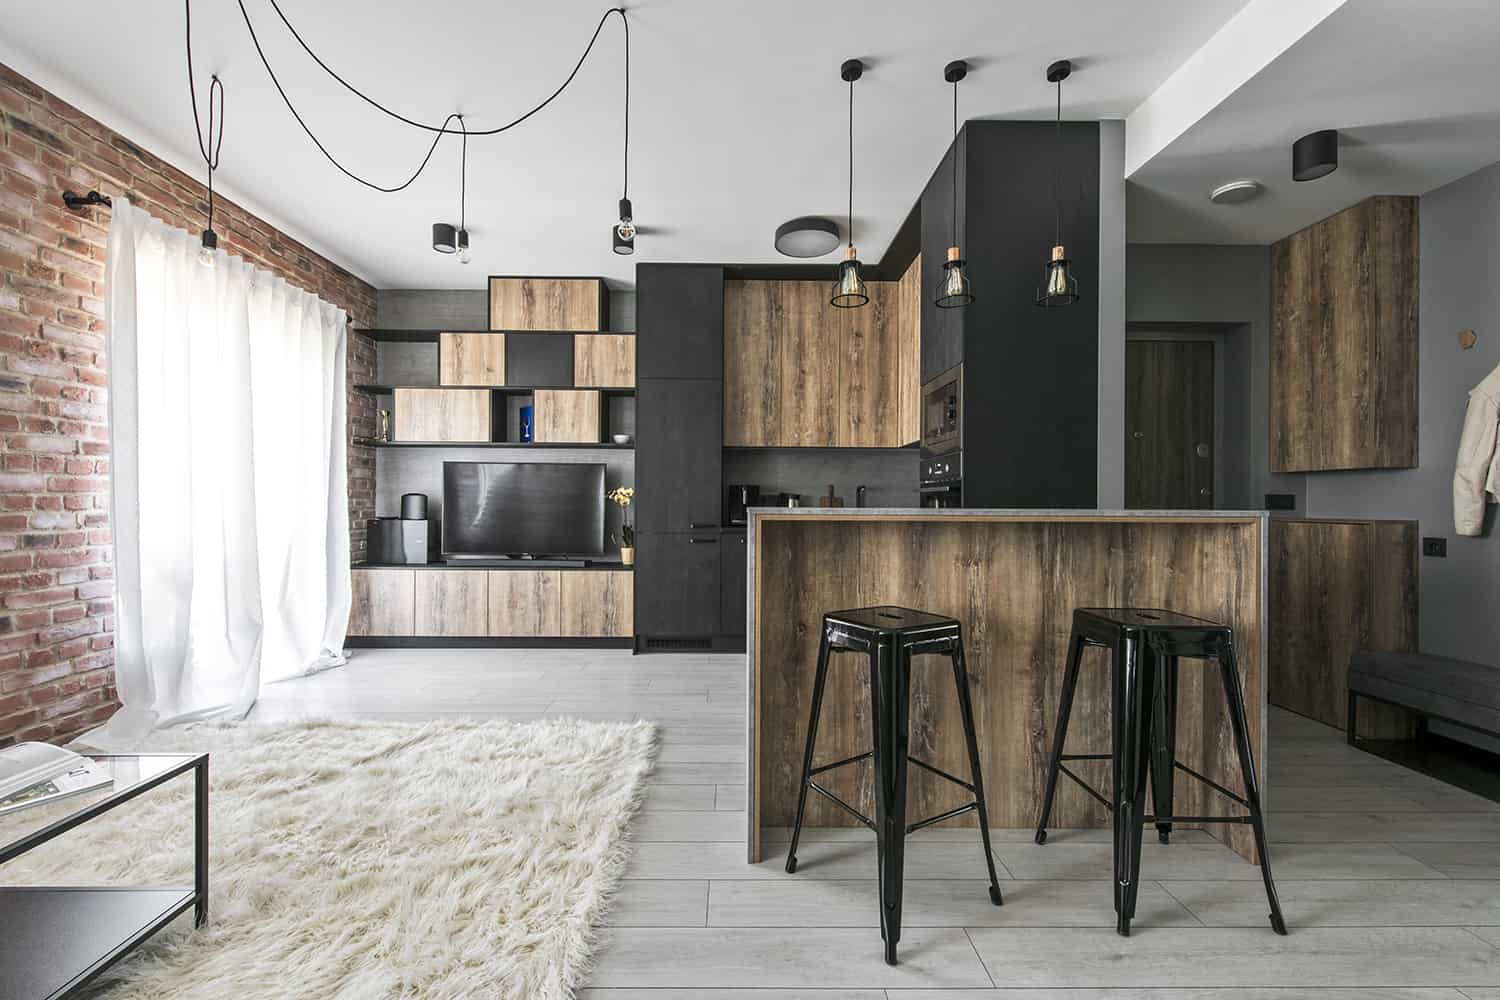 Small Apartment Interior Small Industrial Apartment In Lithuania Gets An Inspiring Update